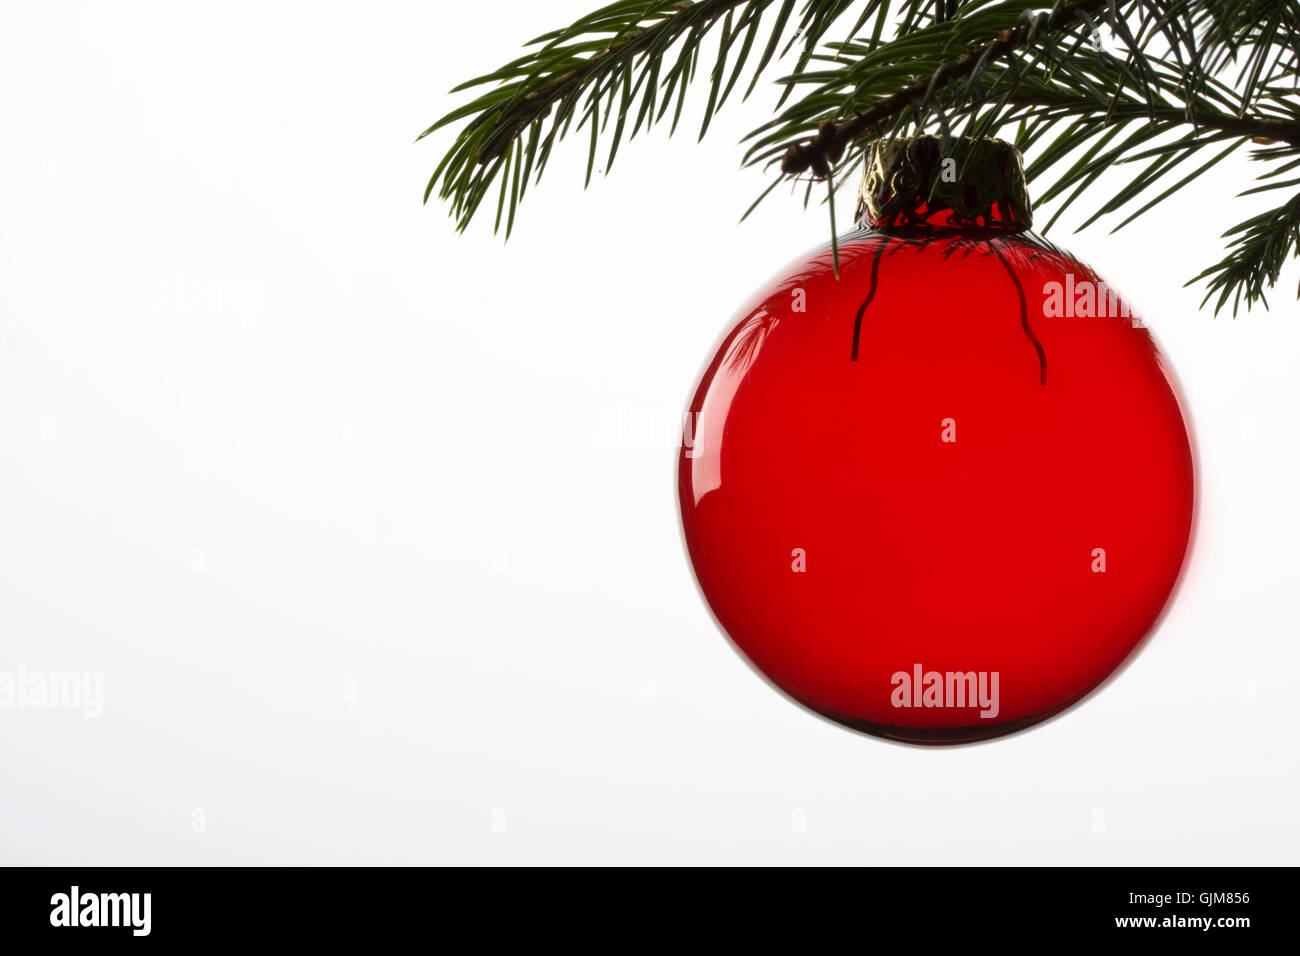 bauble on spruce branch - Stock Image